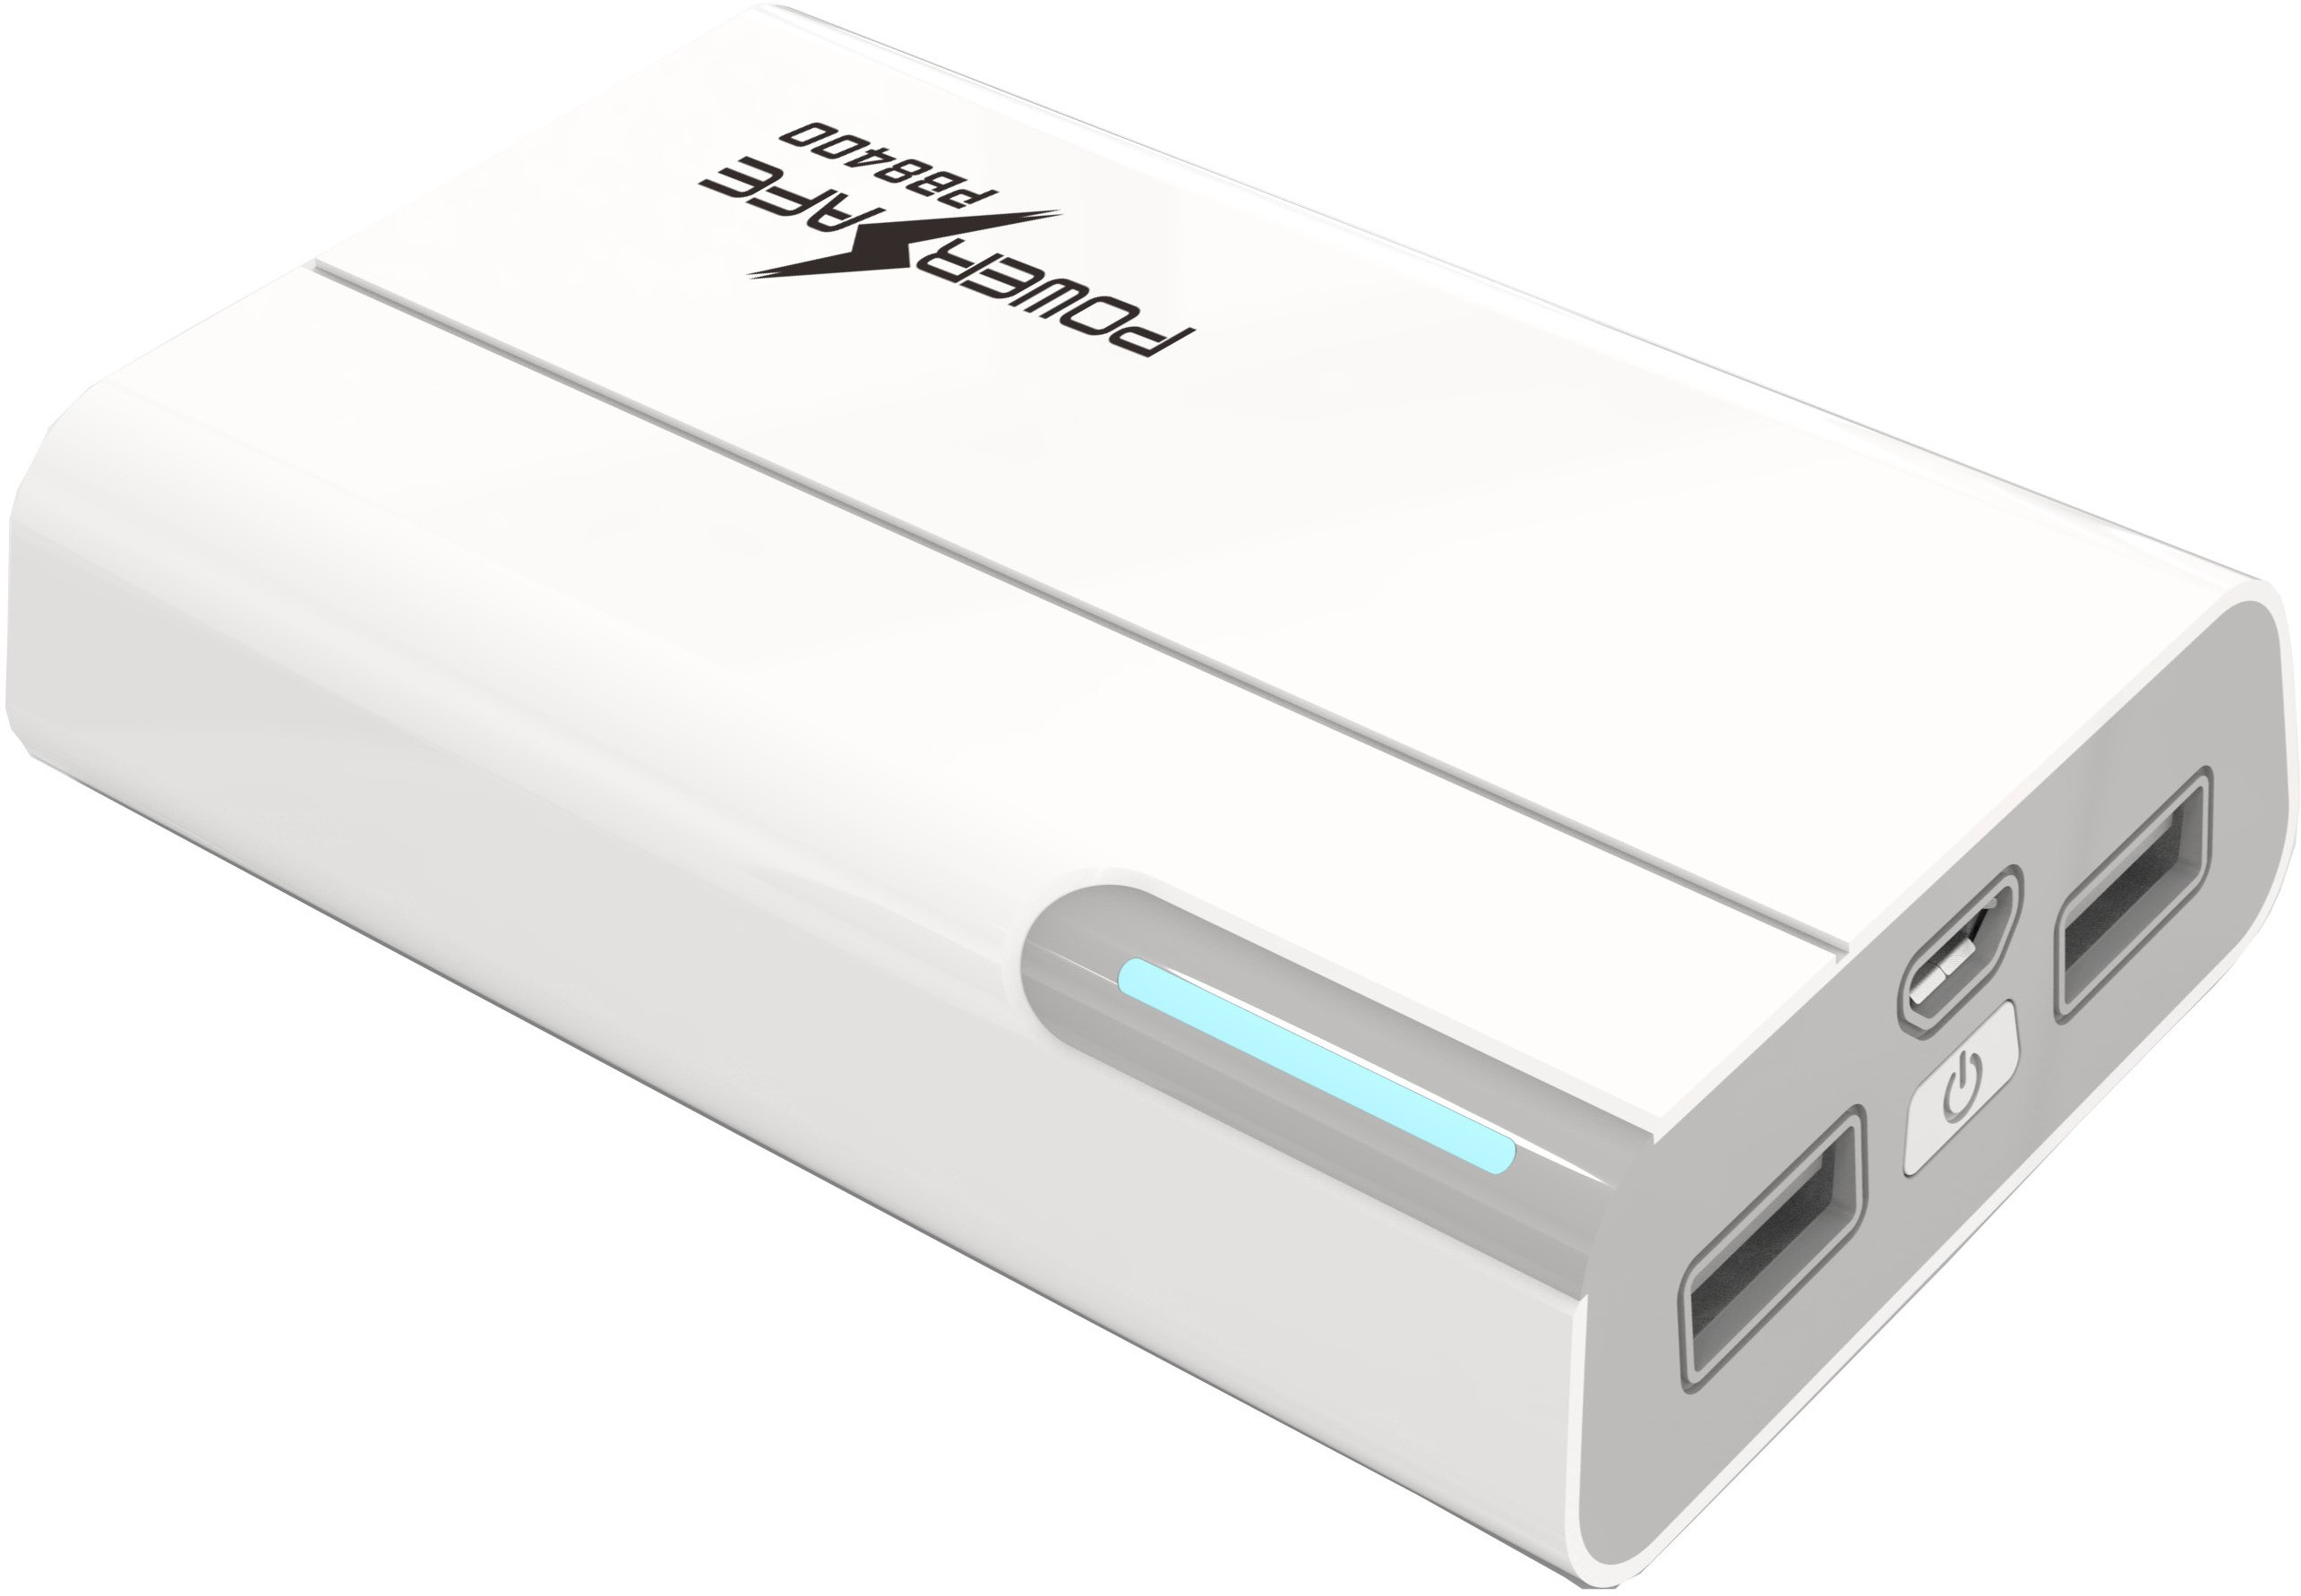 Powersafe PS-PB8400 Dual Usb Portable  8400 mAh Power Bank(White, Lithium Polymer)